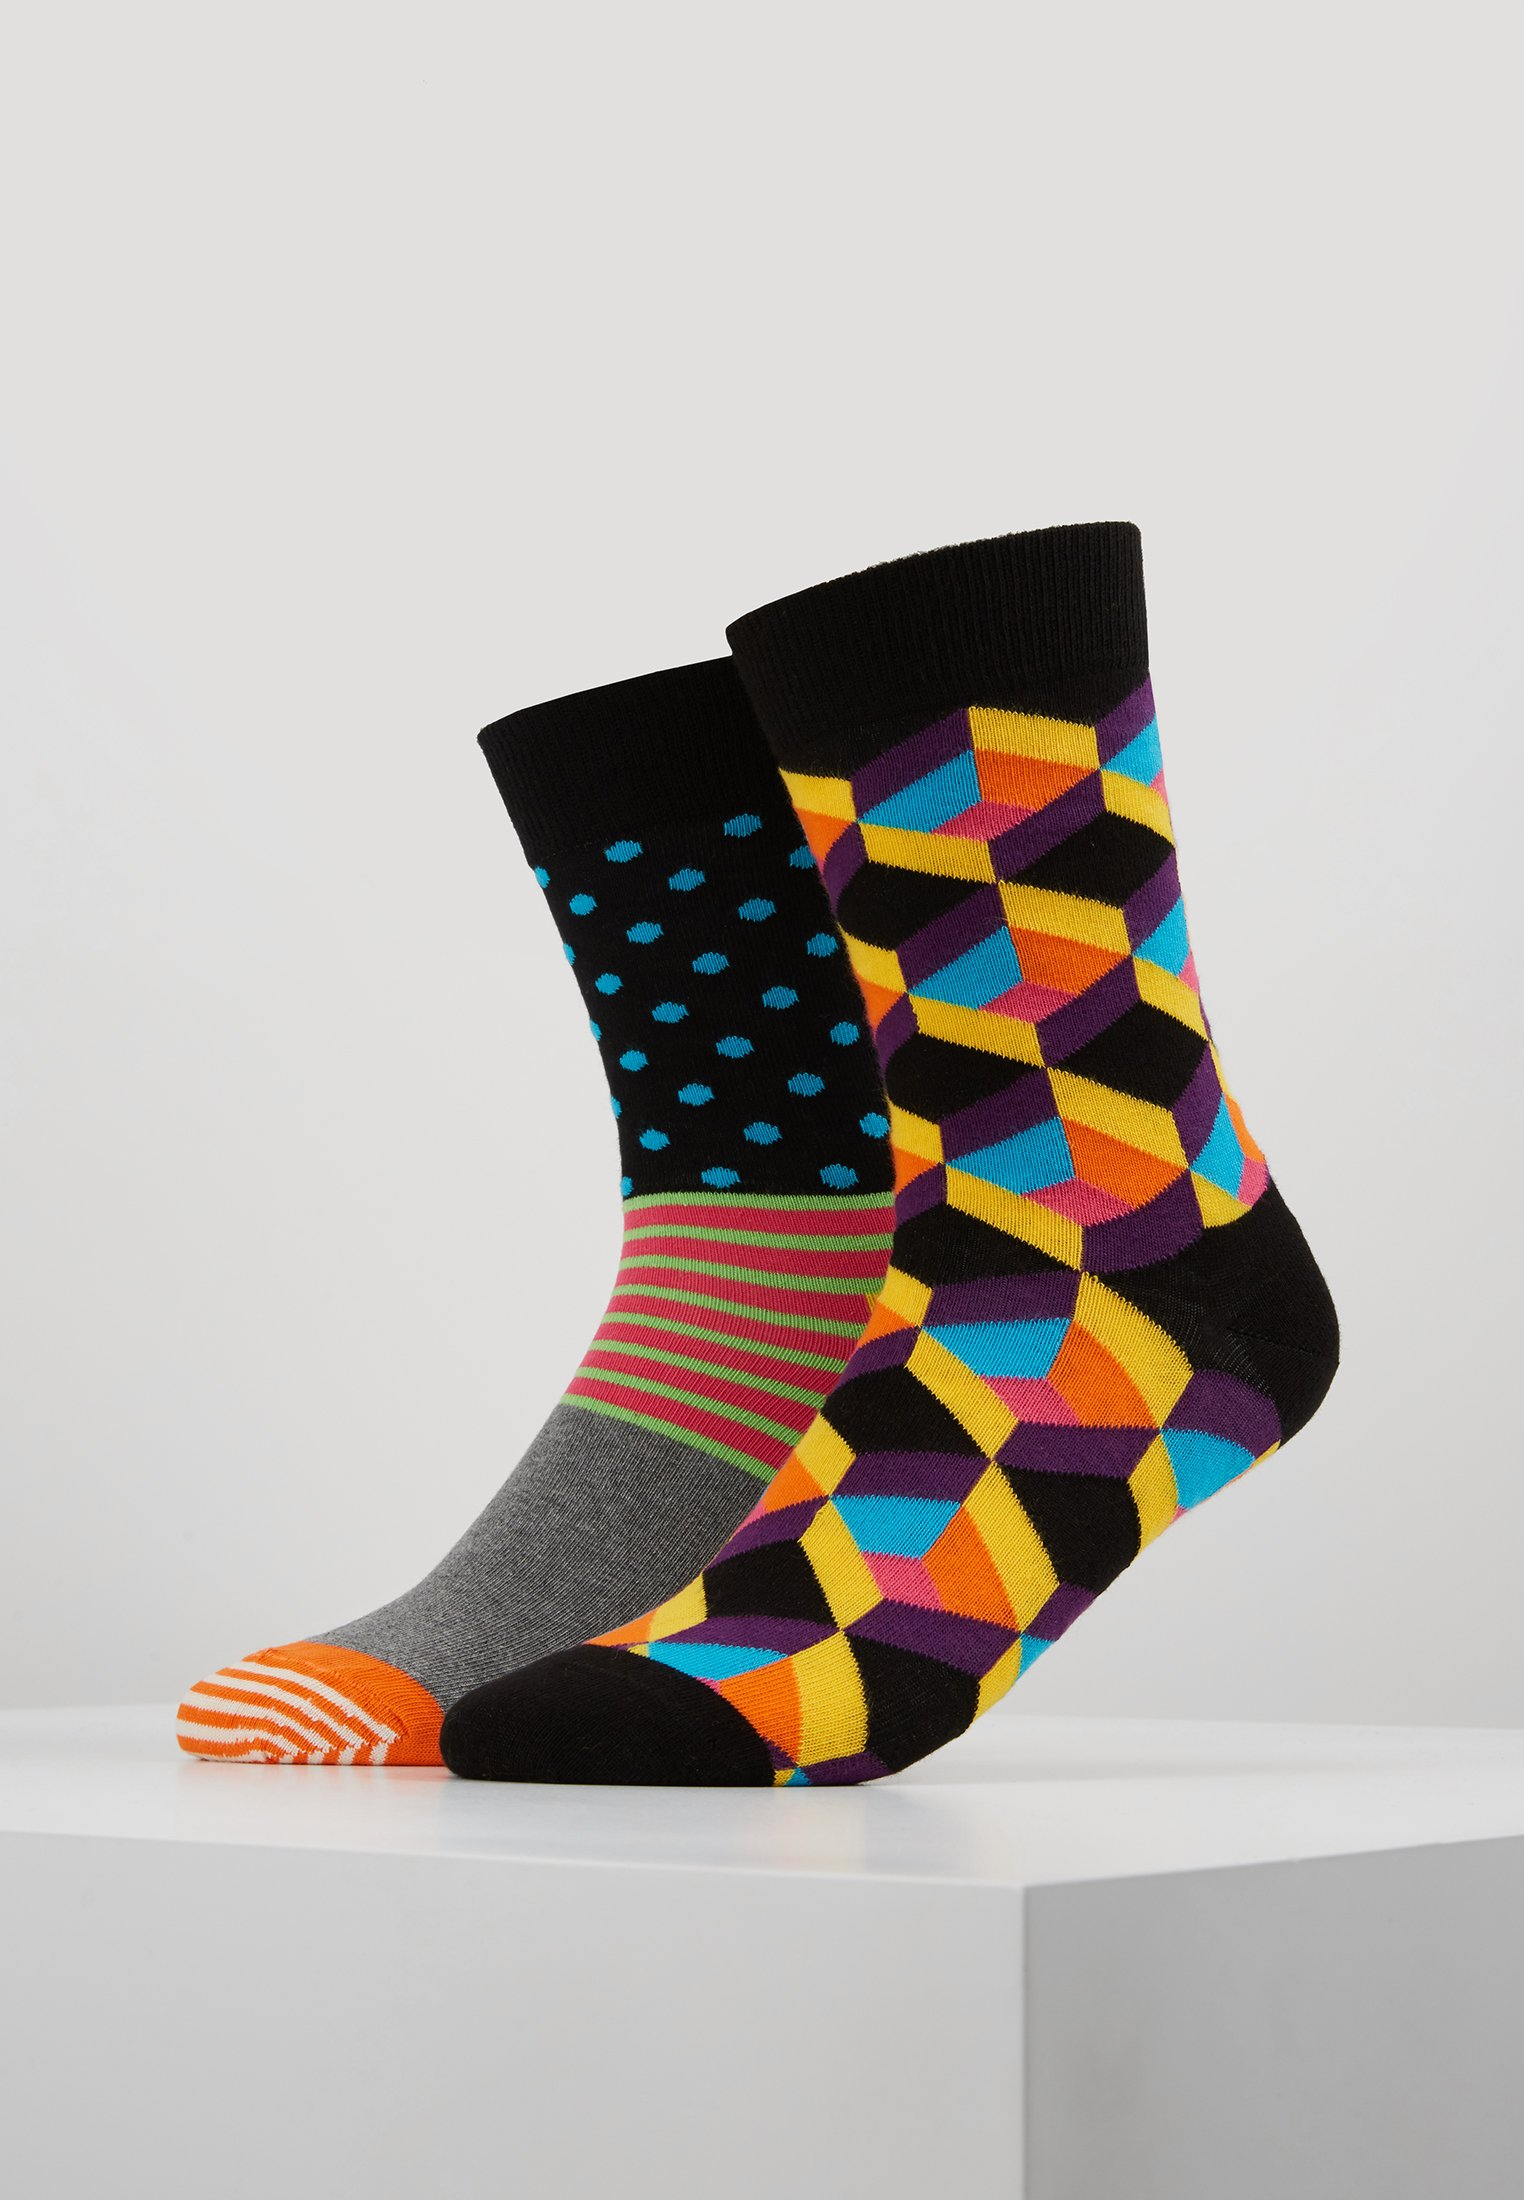 Dot Socks 2 stripe And Optic Multi Square Happy PackChaussettes SUzpqLMVG